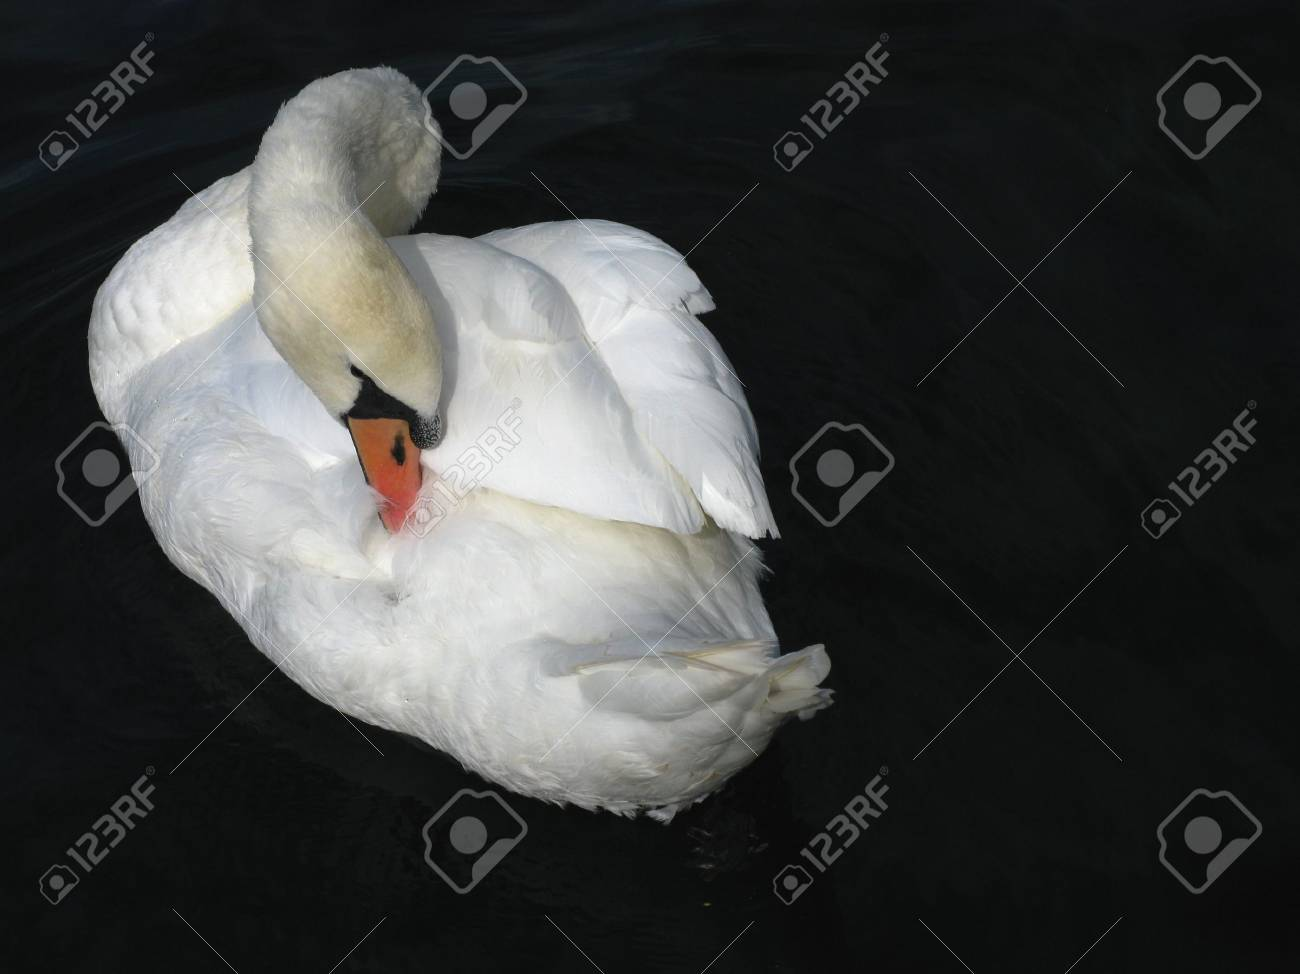 The Sleeping Swans >> A Sleeping Swan Stock Photo Picture And Royalty Free Image Image